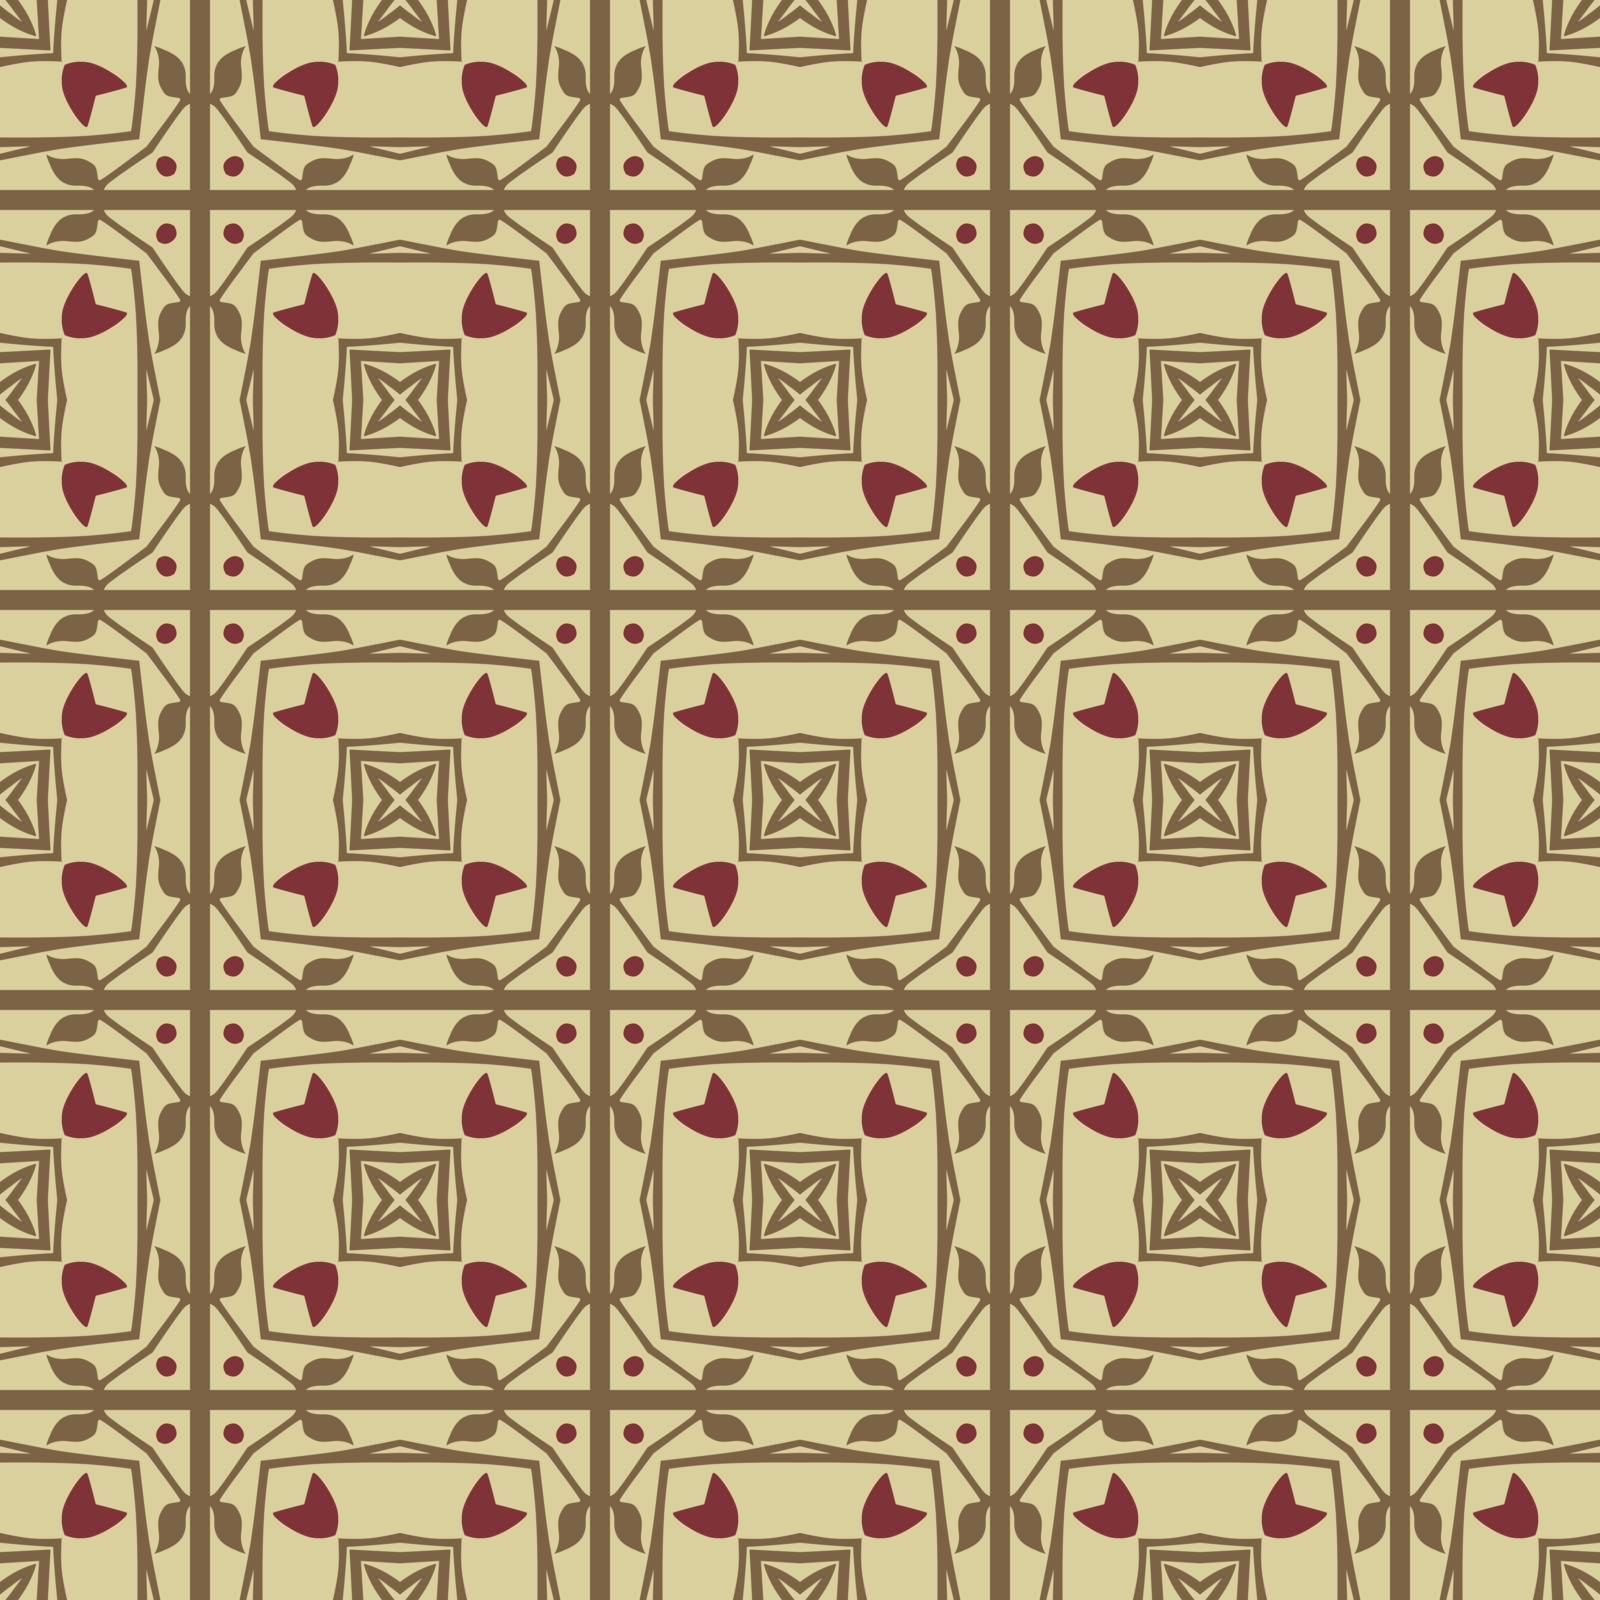 Seamless illustrated pattern made of abstract elements in beige, brown and dark red